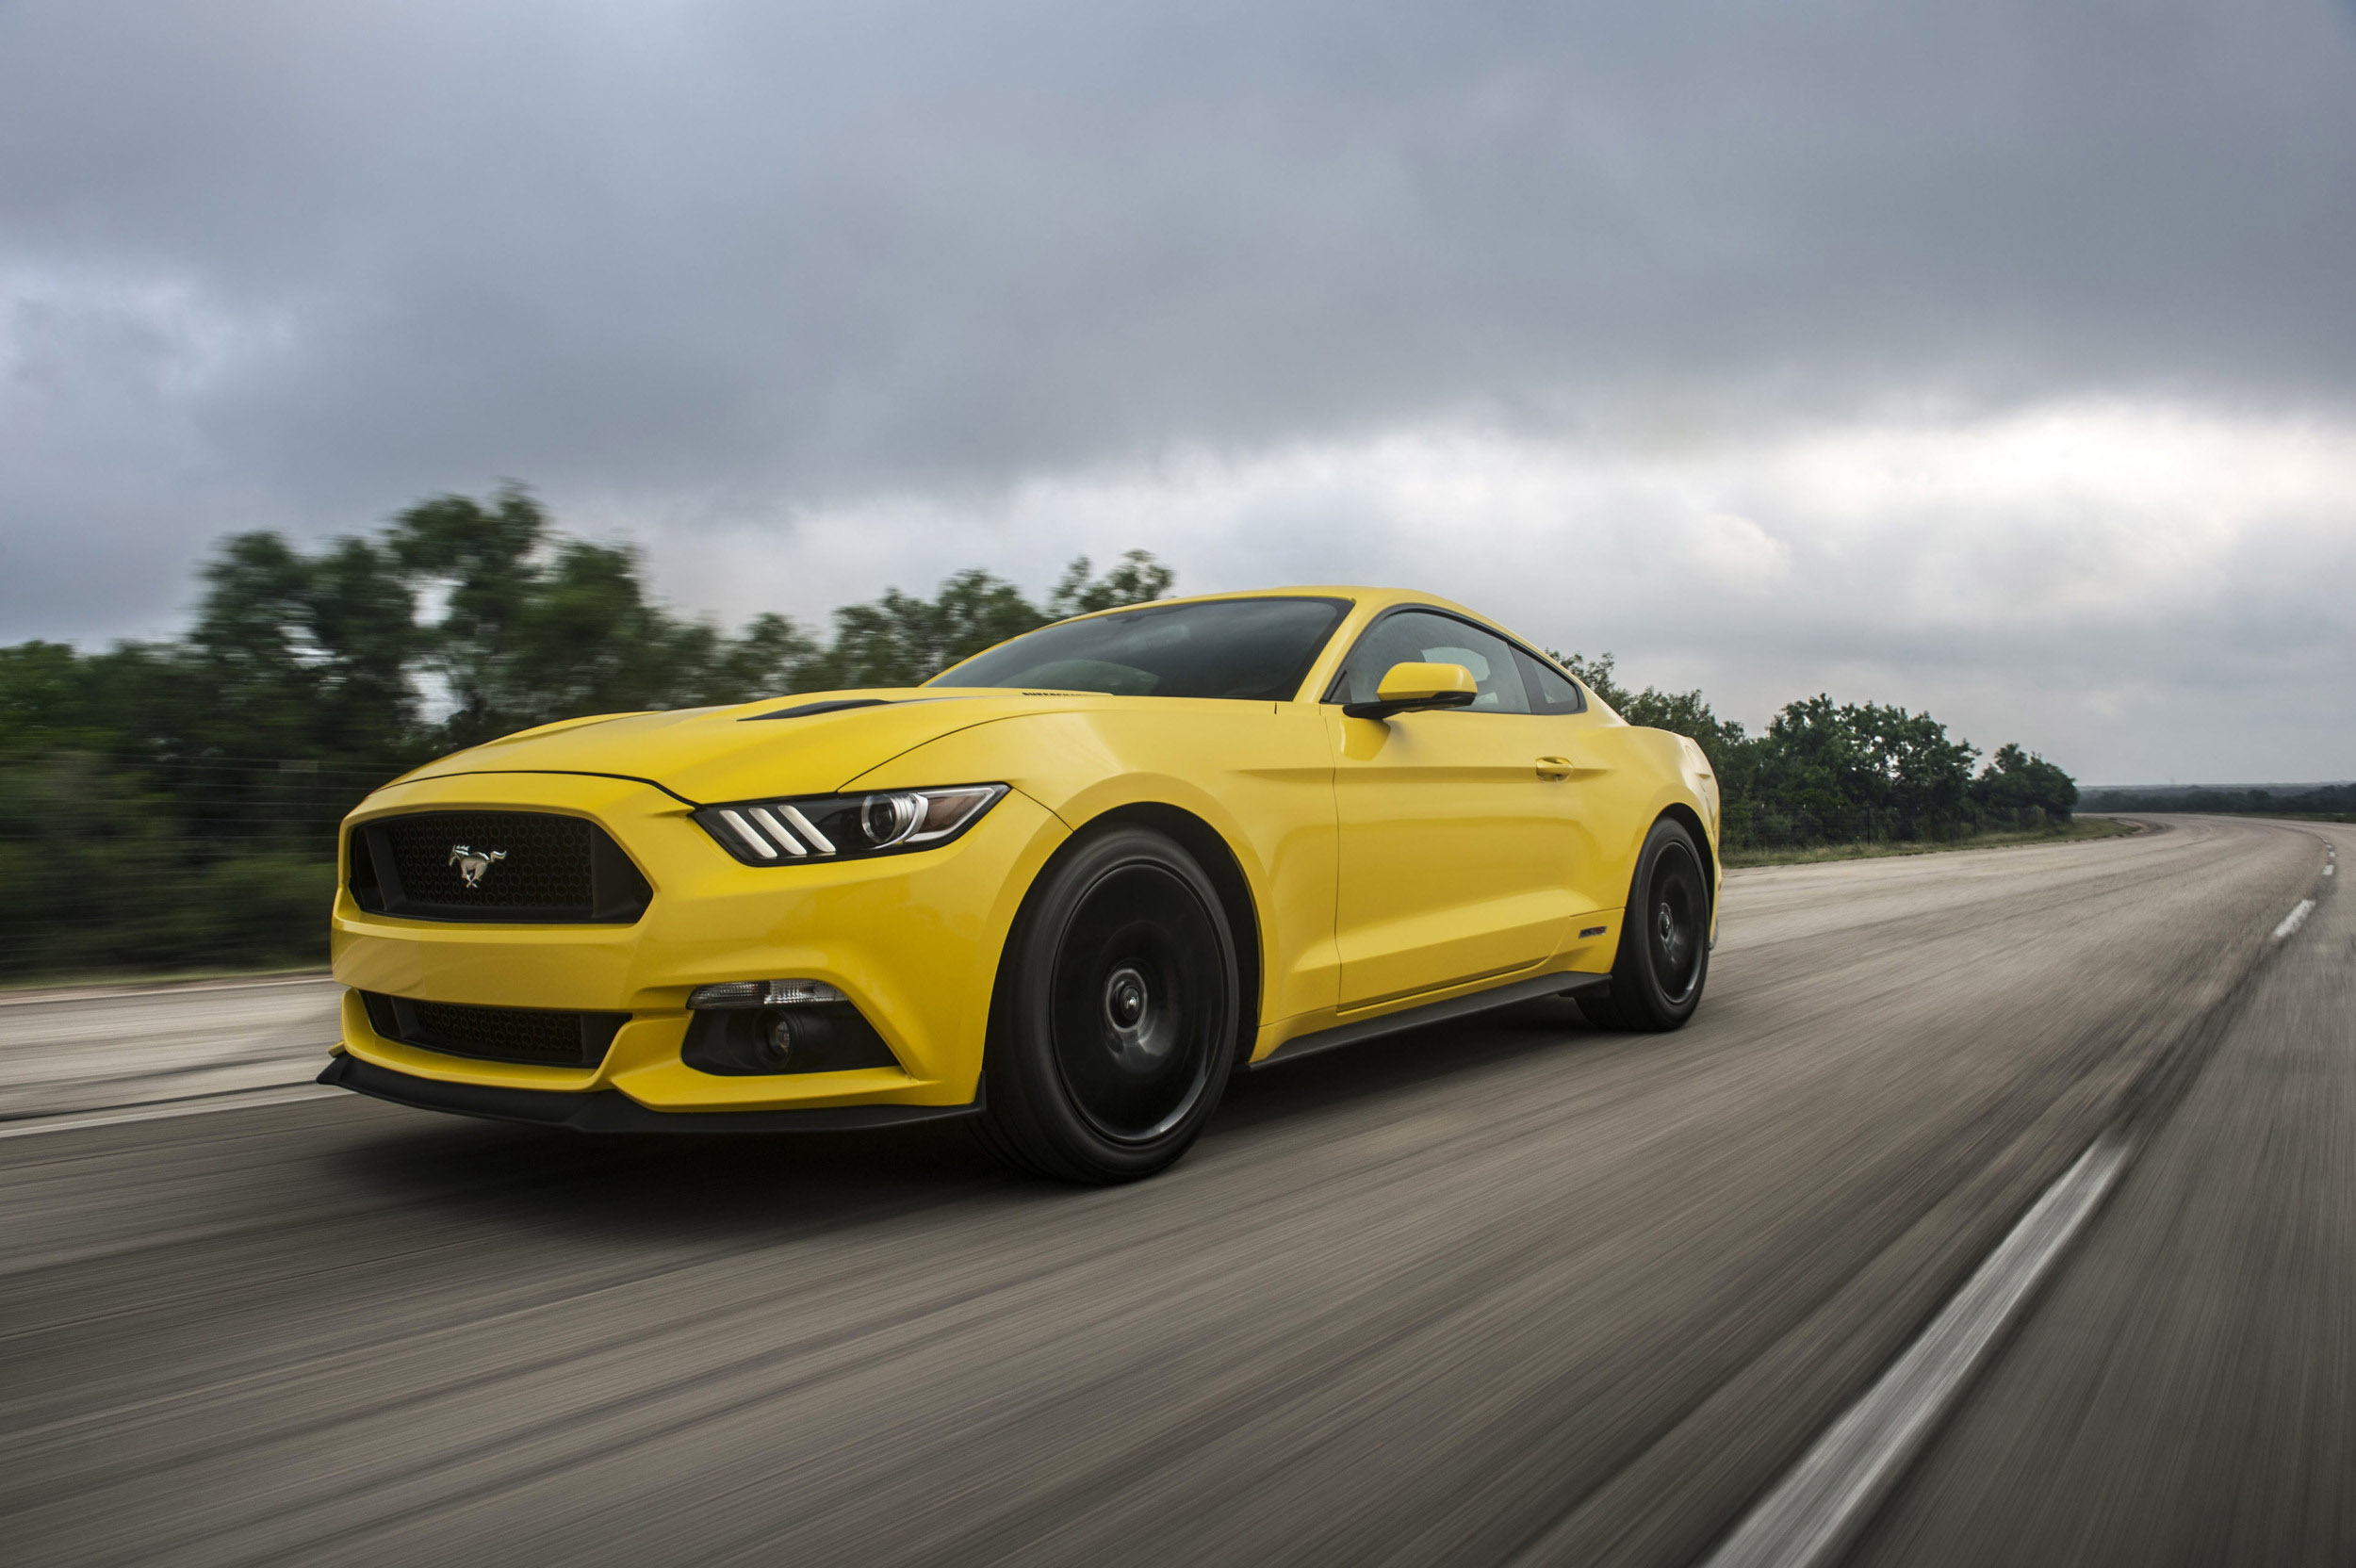 Image 30 Of 48 2018 Hennessey Mustang Gt Hpe700 Supercharged 1964 Ford Makes Top Speed Record Hitting